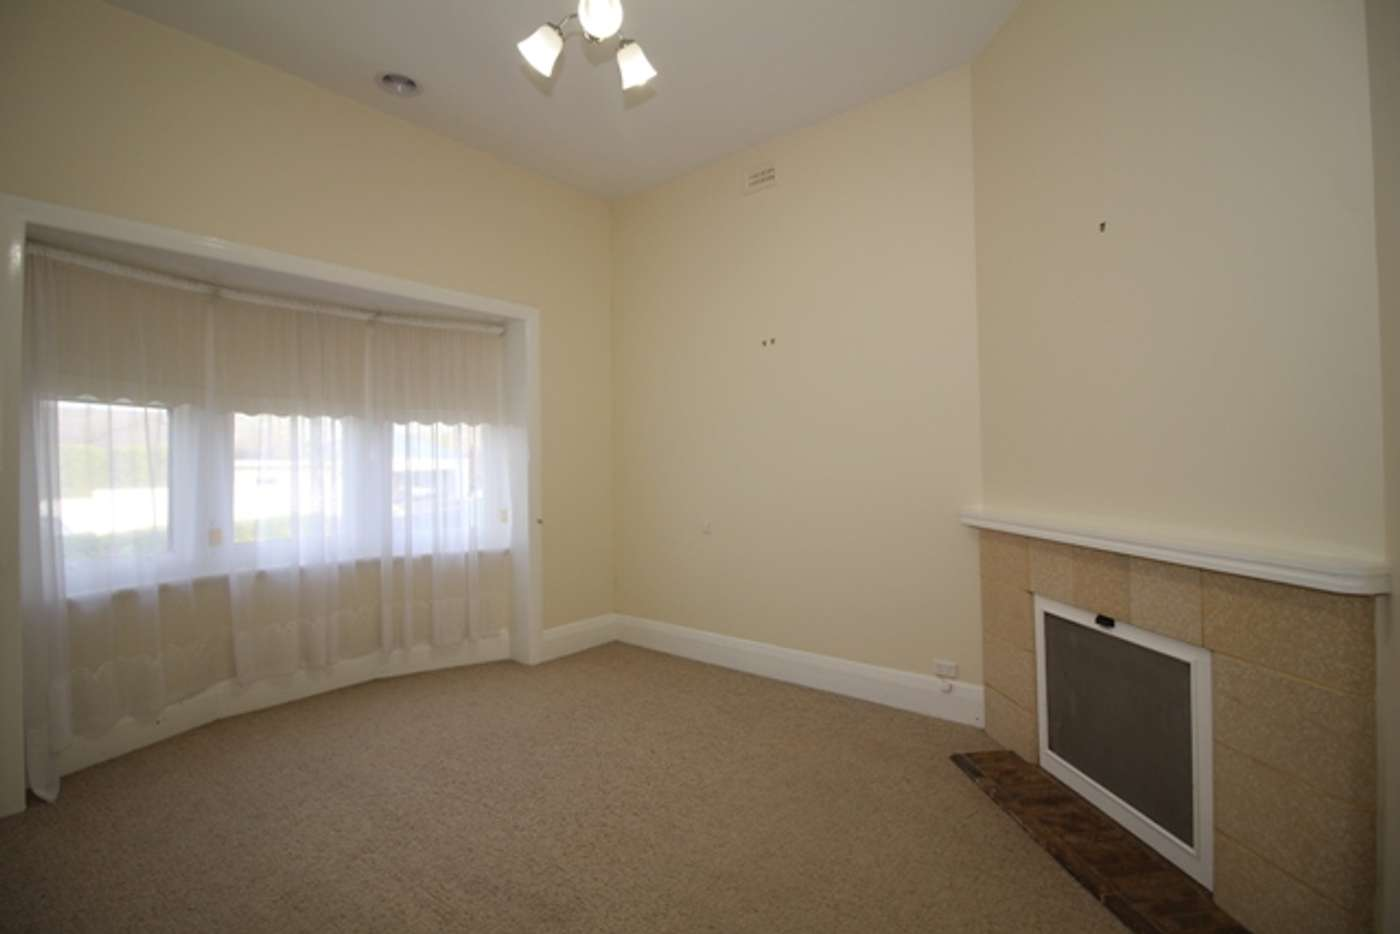 Seventh view of Homely house listing, 72 Ferrers Street, Mount Gambier SA 5290